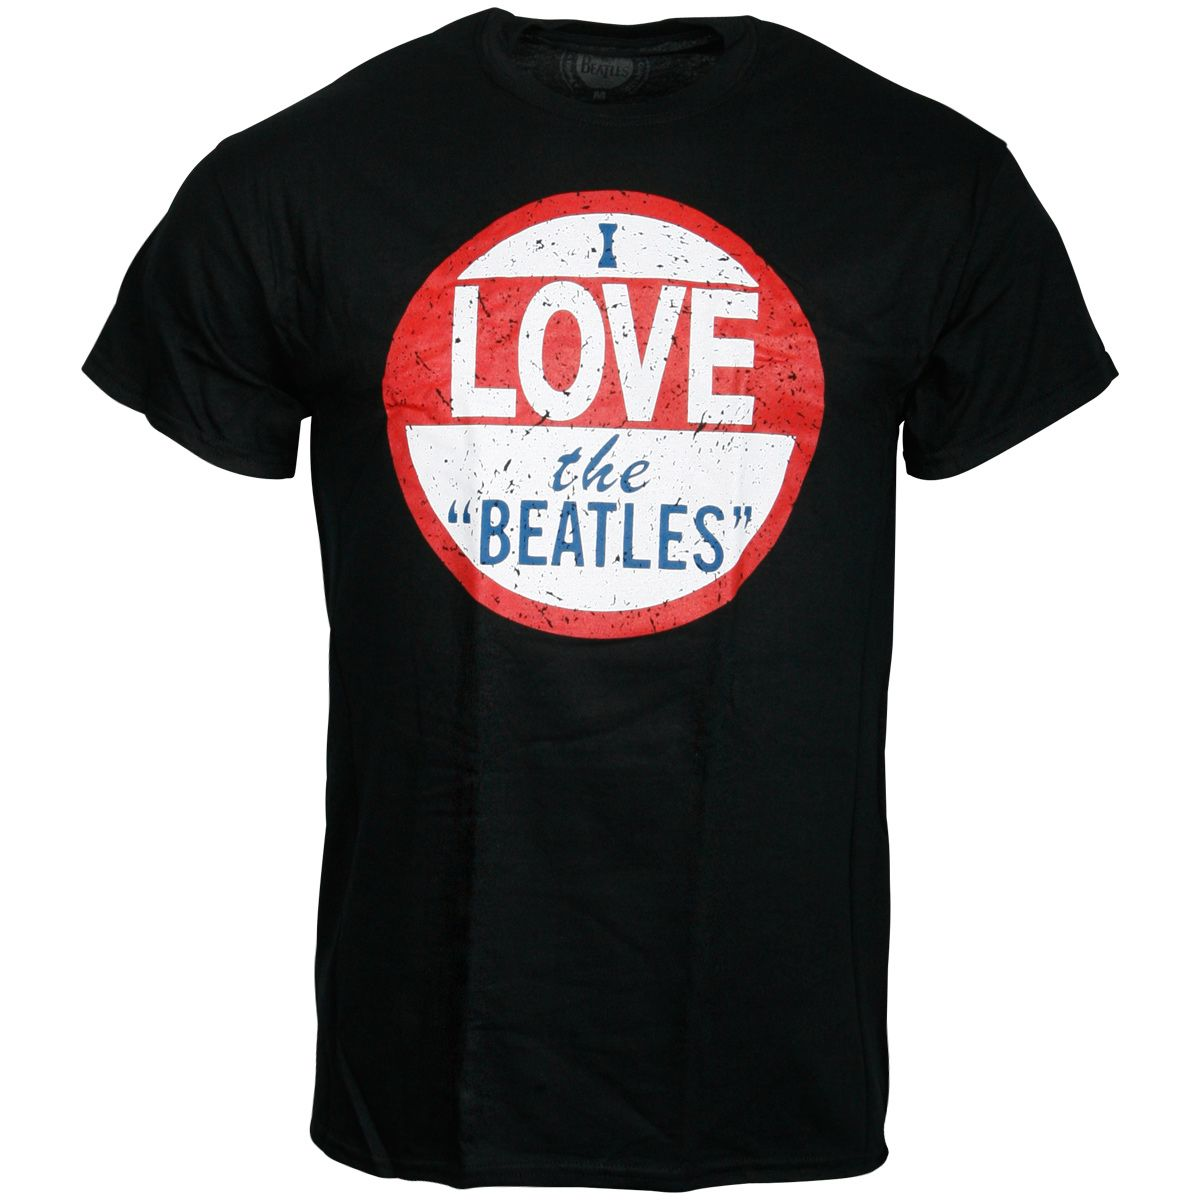 The Beatles - T-Shirt I Love The Beatles - schwarz